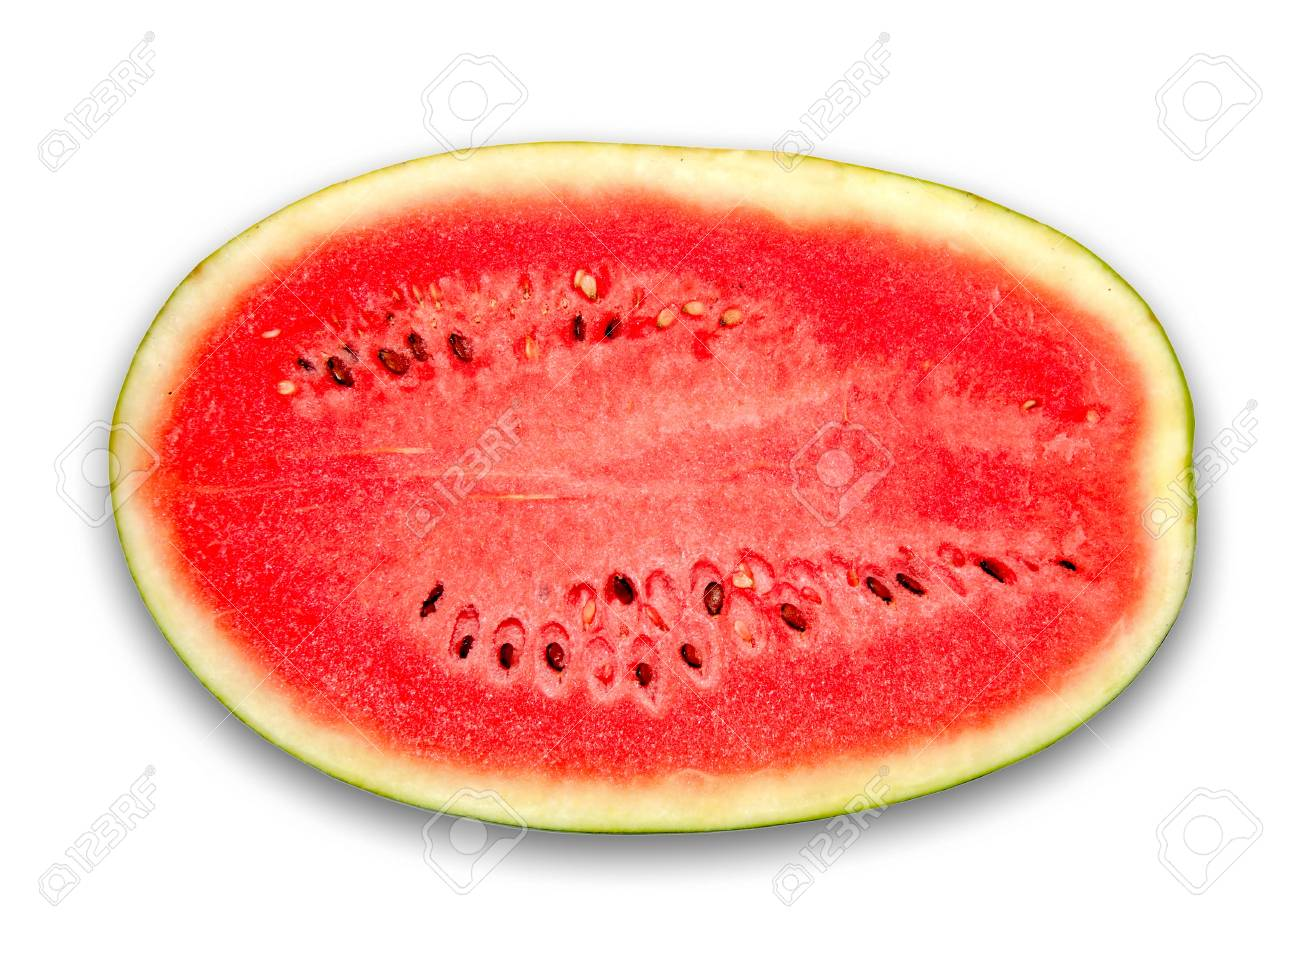 The Fresh water melon isolated on white background Stock Photo - 12028053